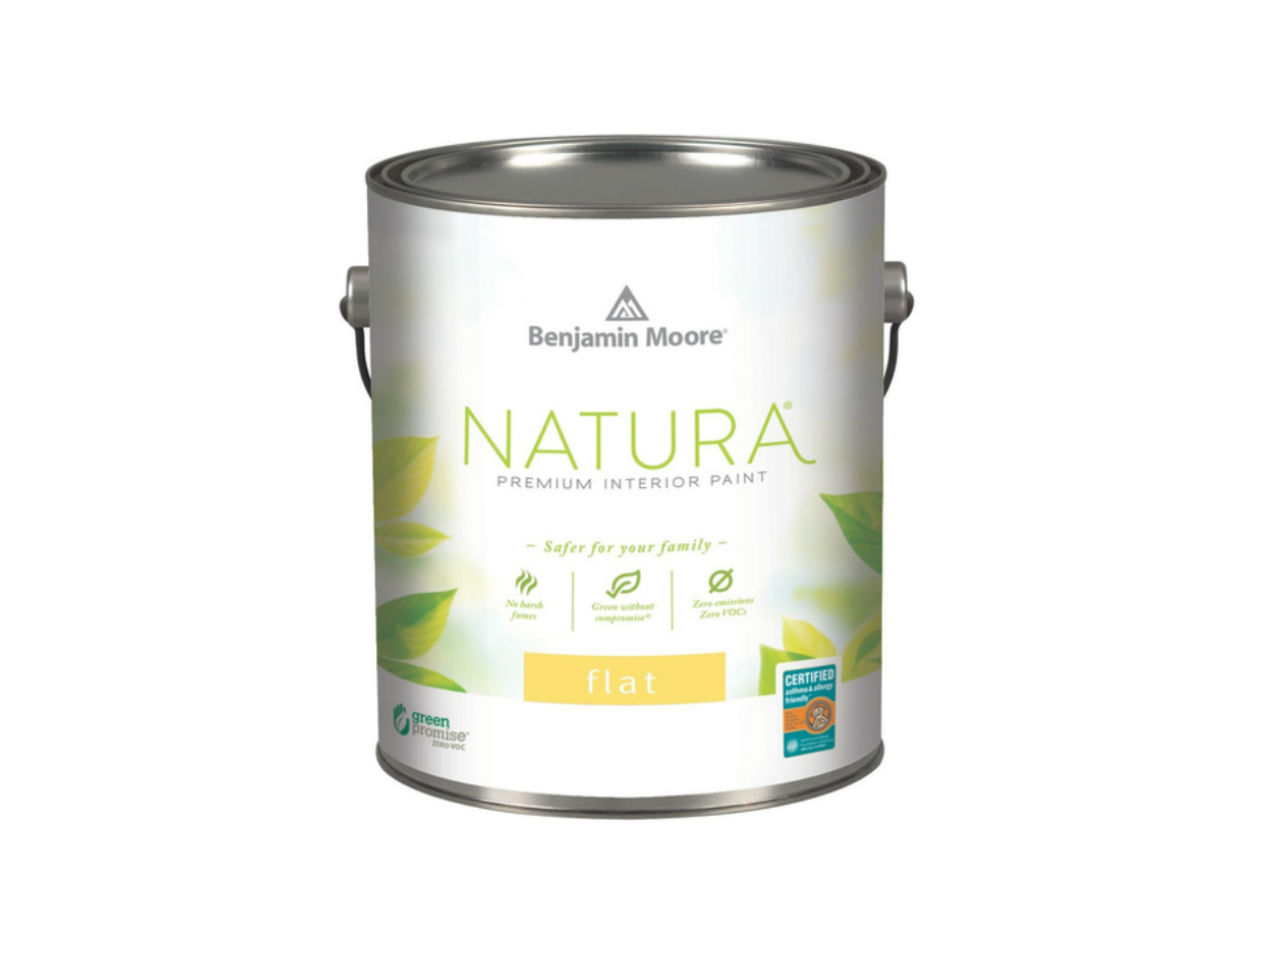 benjamin moore natura paint can in flat on a white background